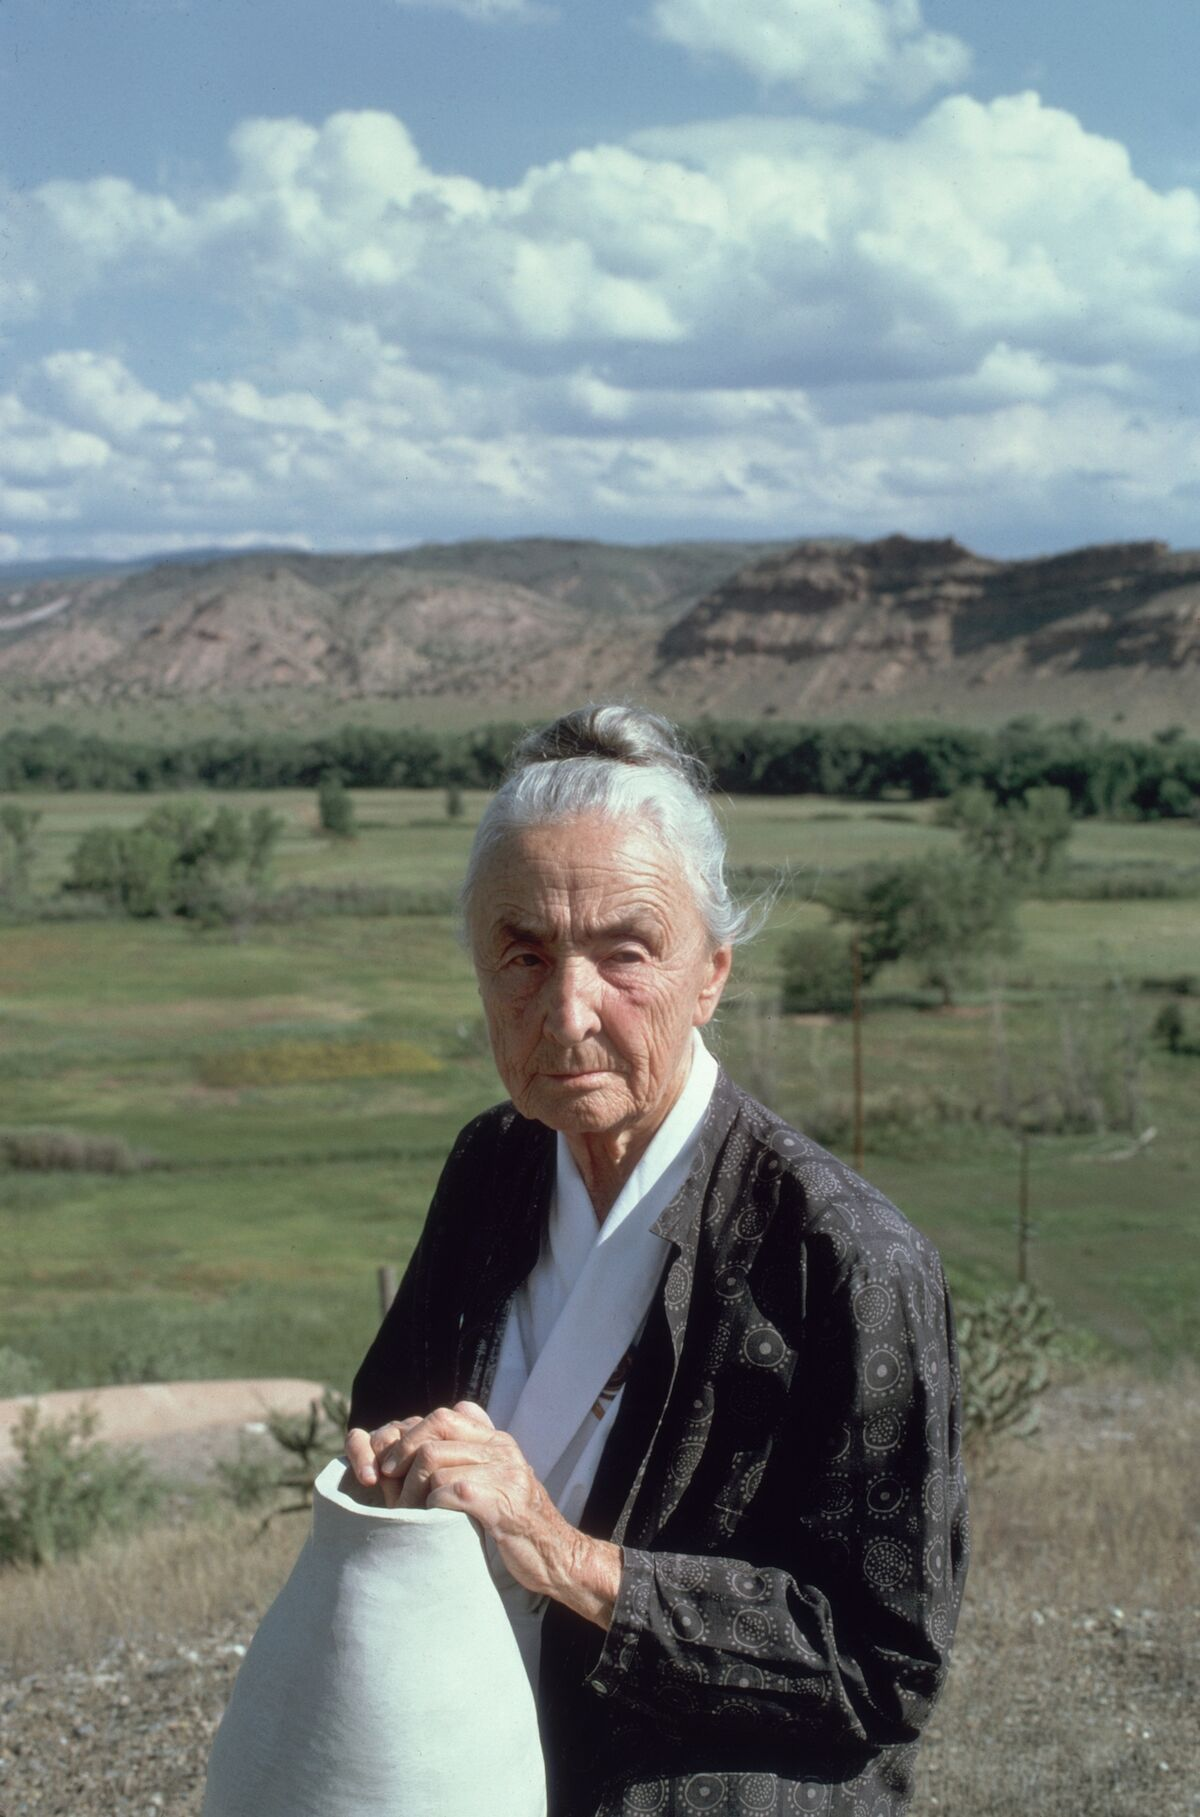 Portrait of Georgia O'Keeffe in Abiquiu, New Mexico, 1974. Photo by Joe Munroe/Hulton Archive/Getty Images.